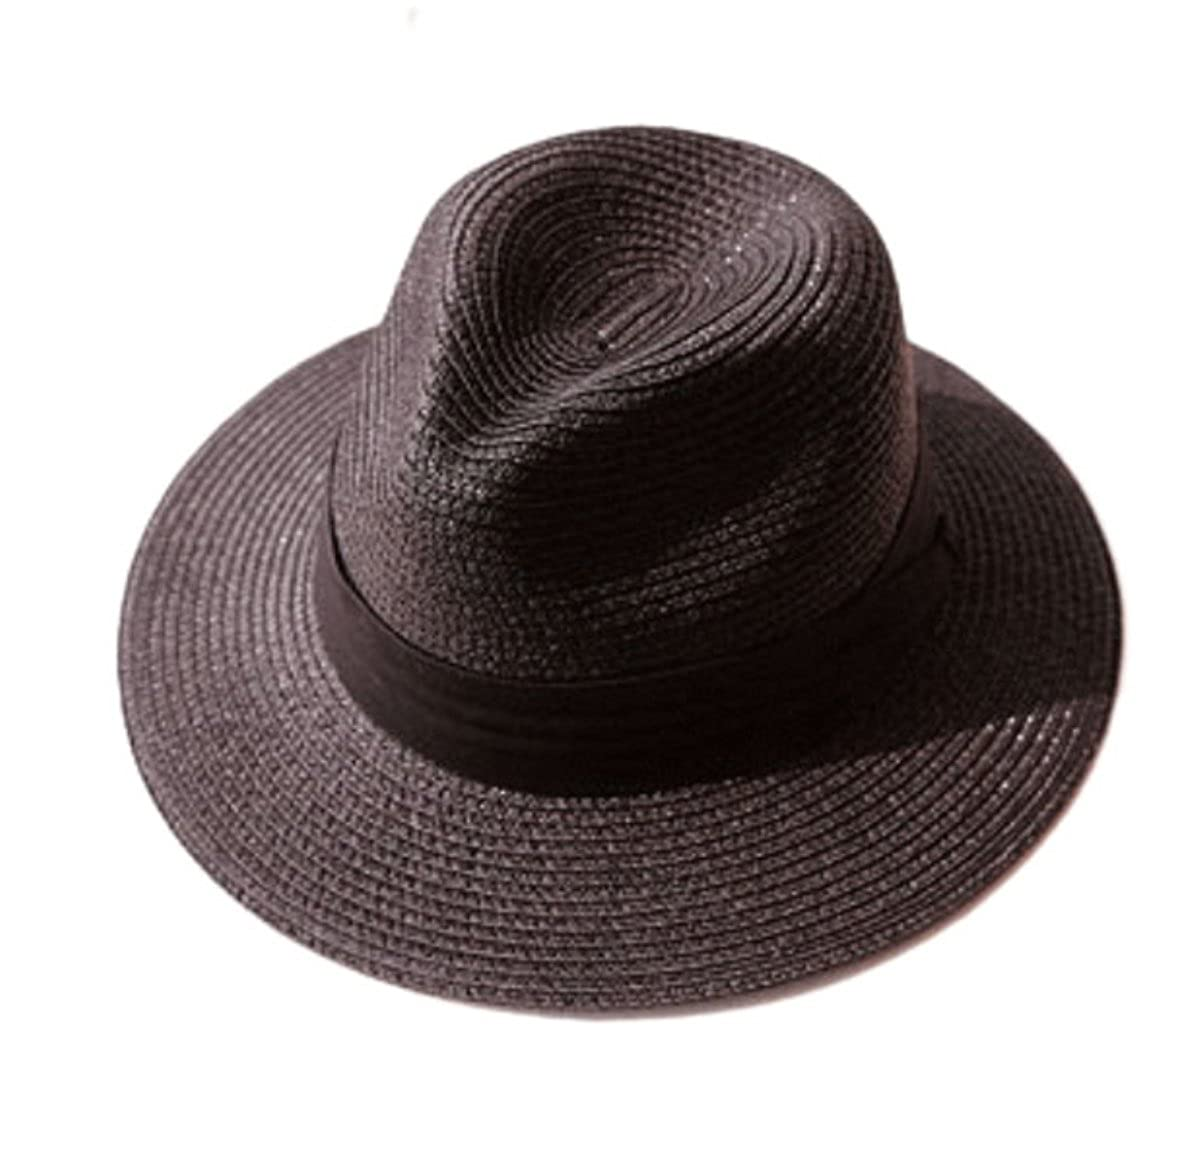 Tomily Women's Panama Hat Foldable Packable Straw Beach Summer Fedora Sun Hat (Black) MZS1-1